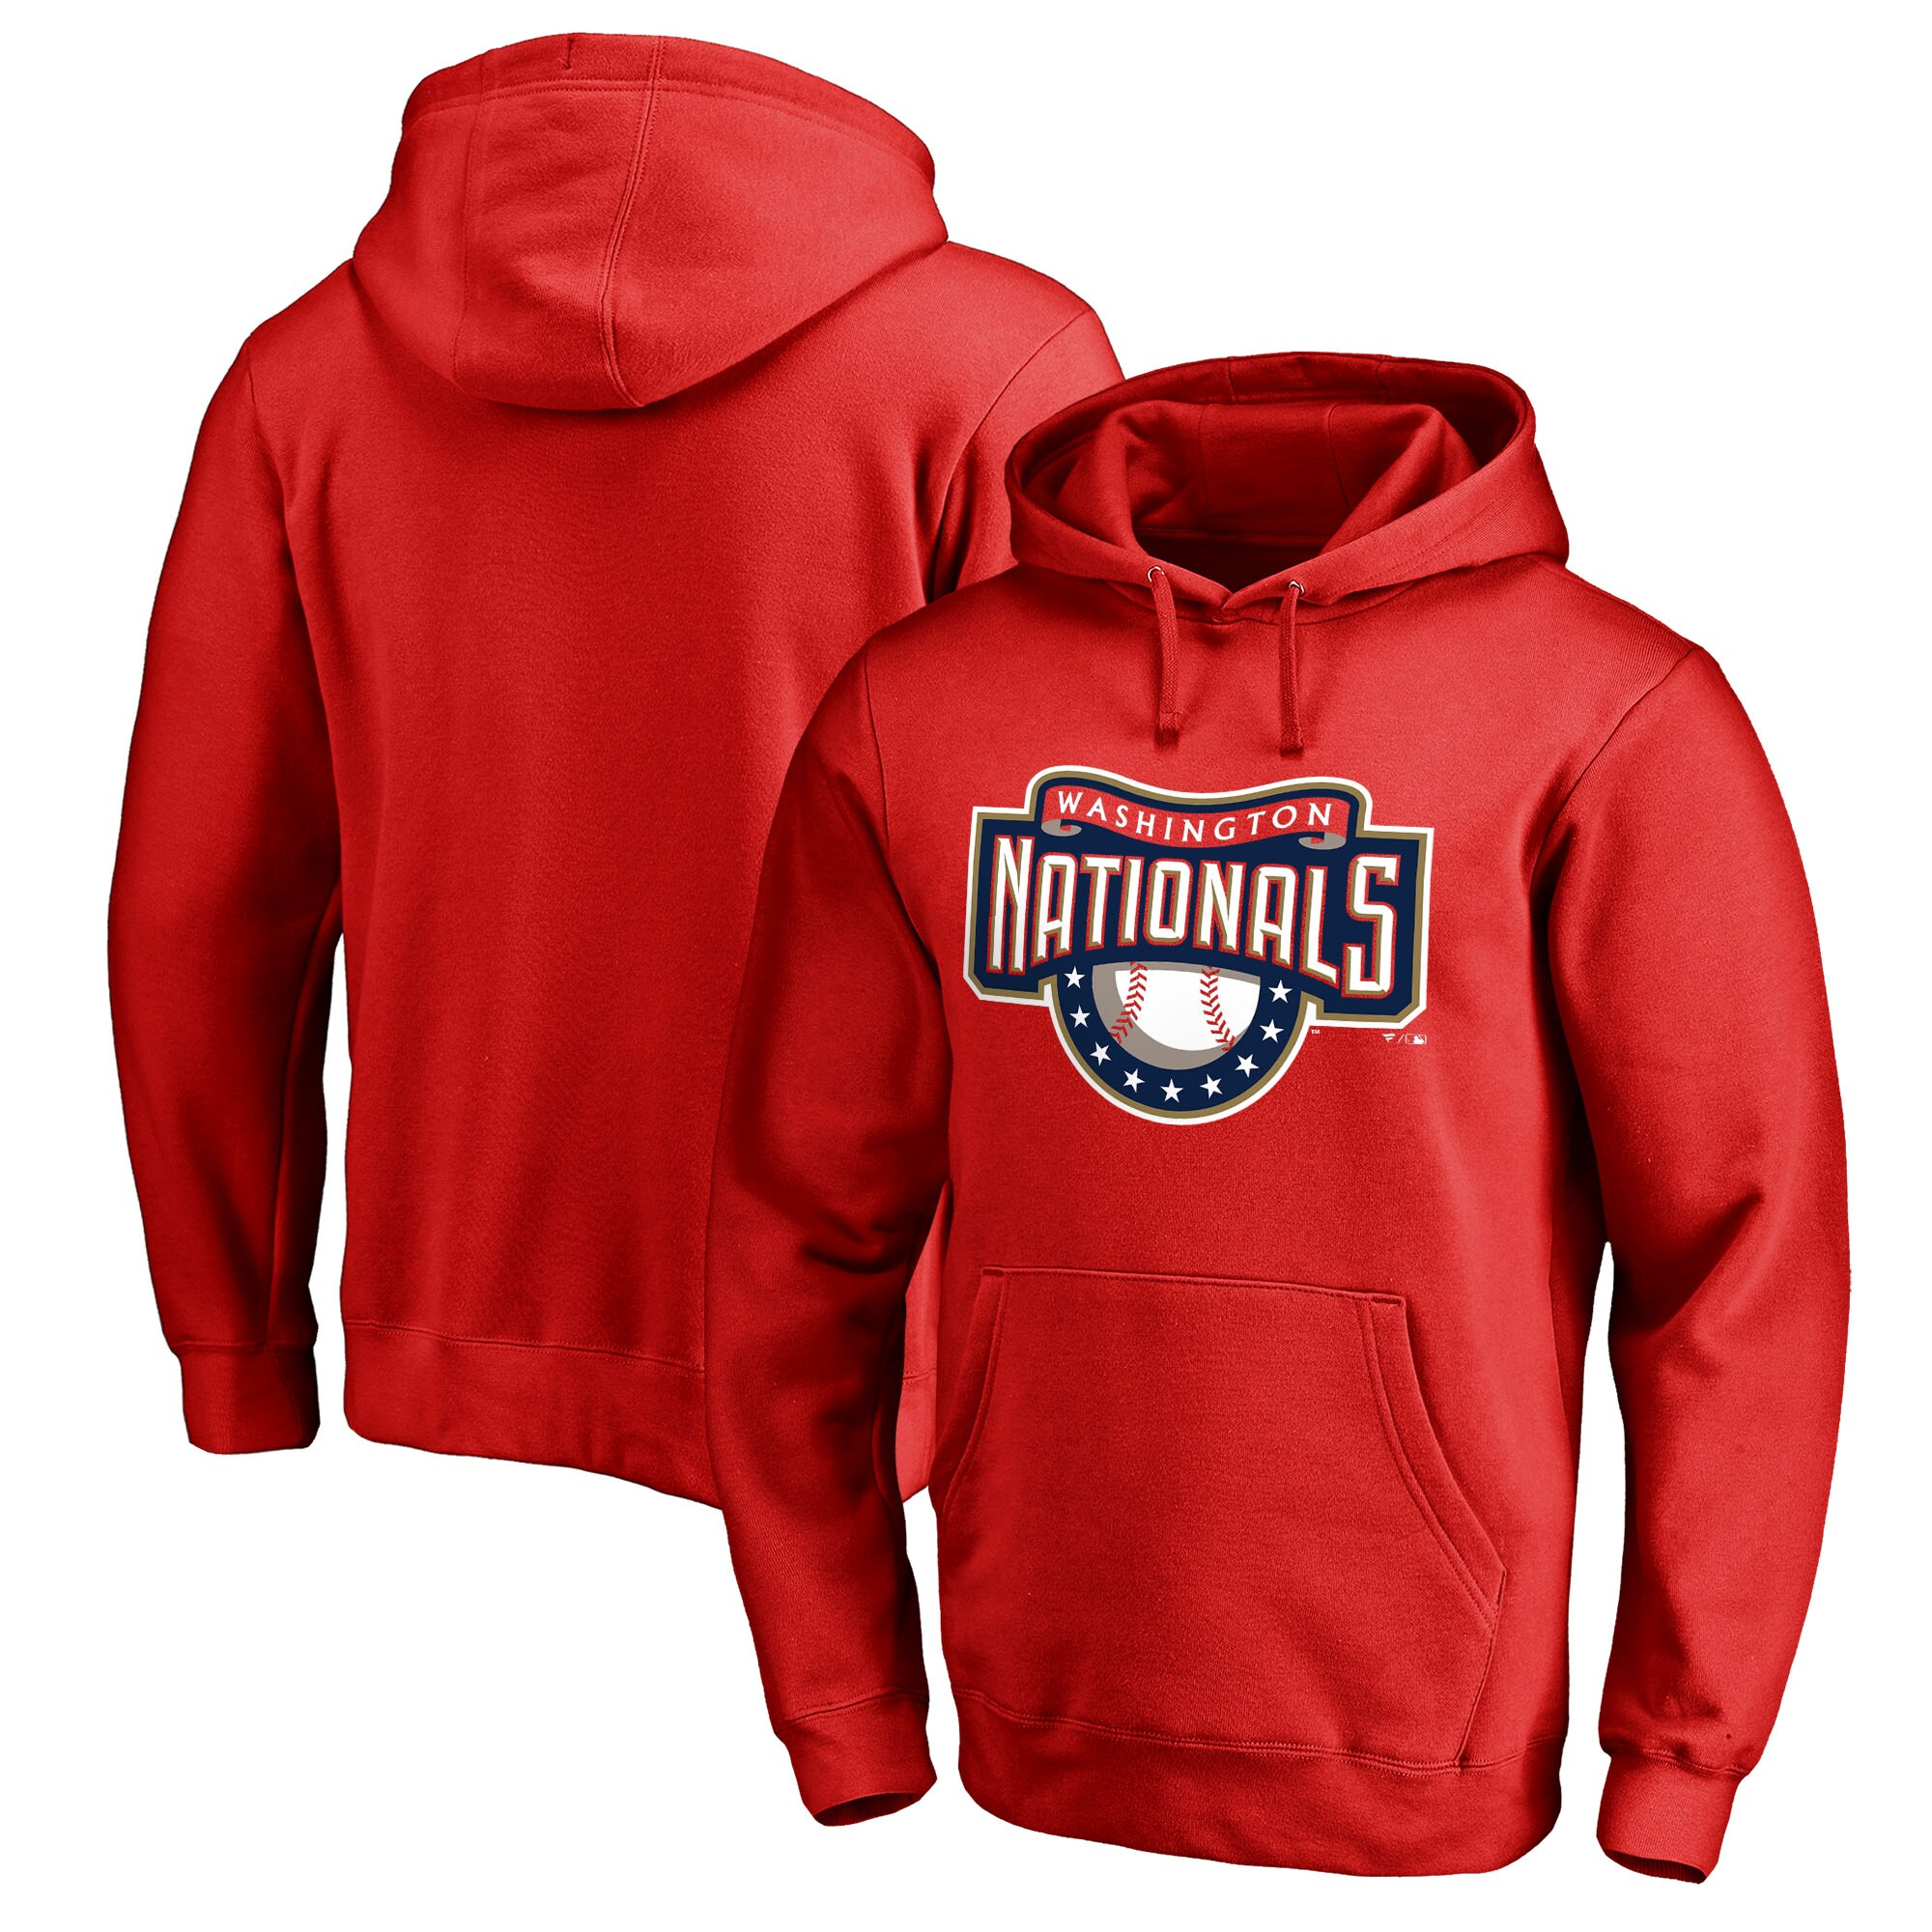 Washington Nationals Fanatics Branded Cooperstown Collection Huntington Big & Tall Pullover Hoodie - Red